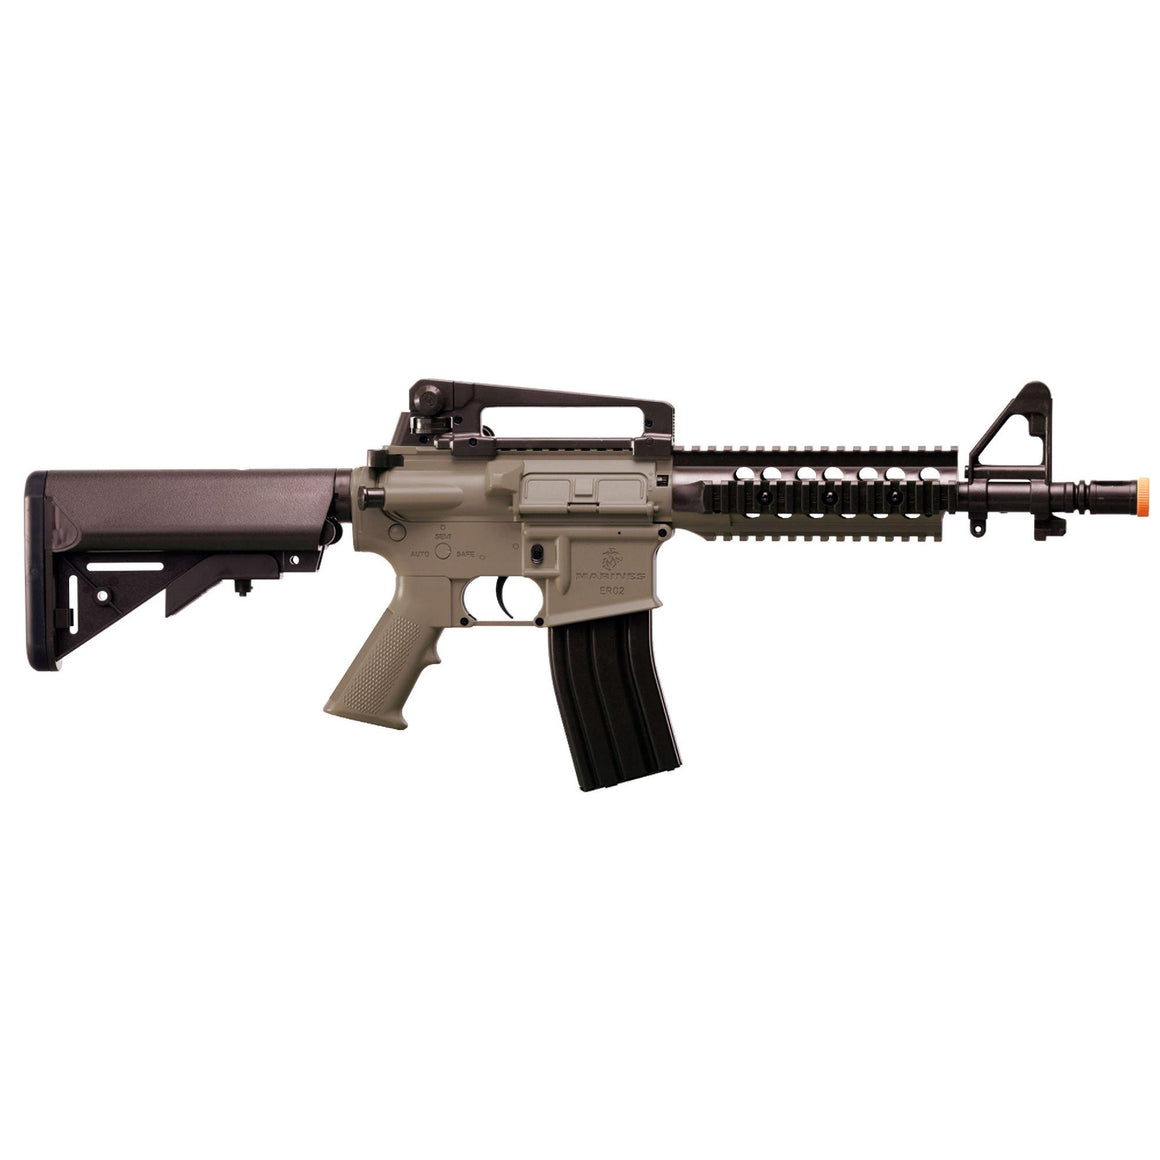 Marines ER02 Electric or Spring Airsoft Rifle